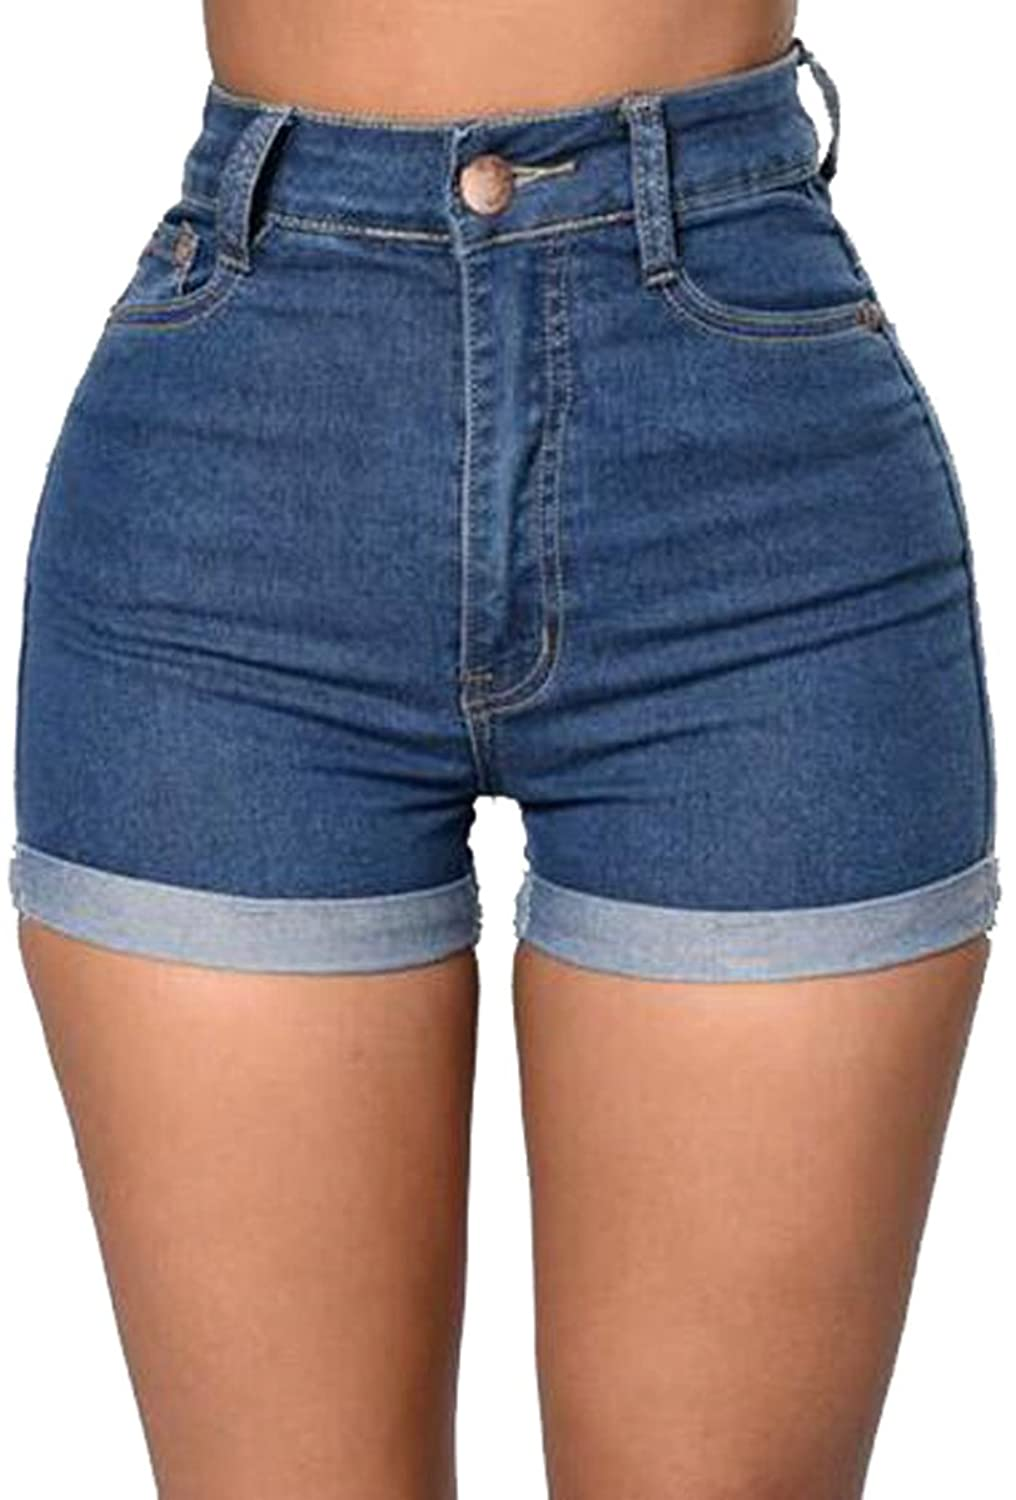 uninukoo-women clothes Unko Women's Stylish High Waist Stretchy Skinny Denim Shorts Hot Pants Jeans